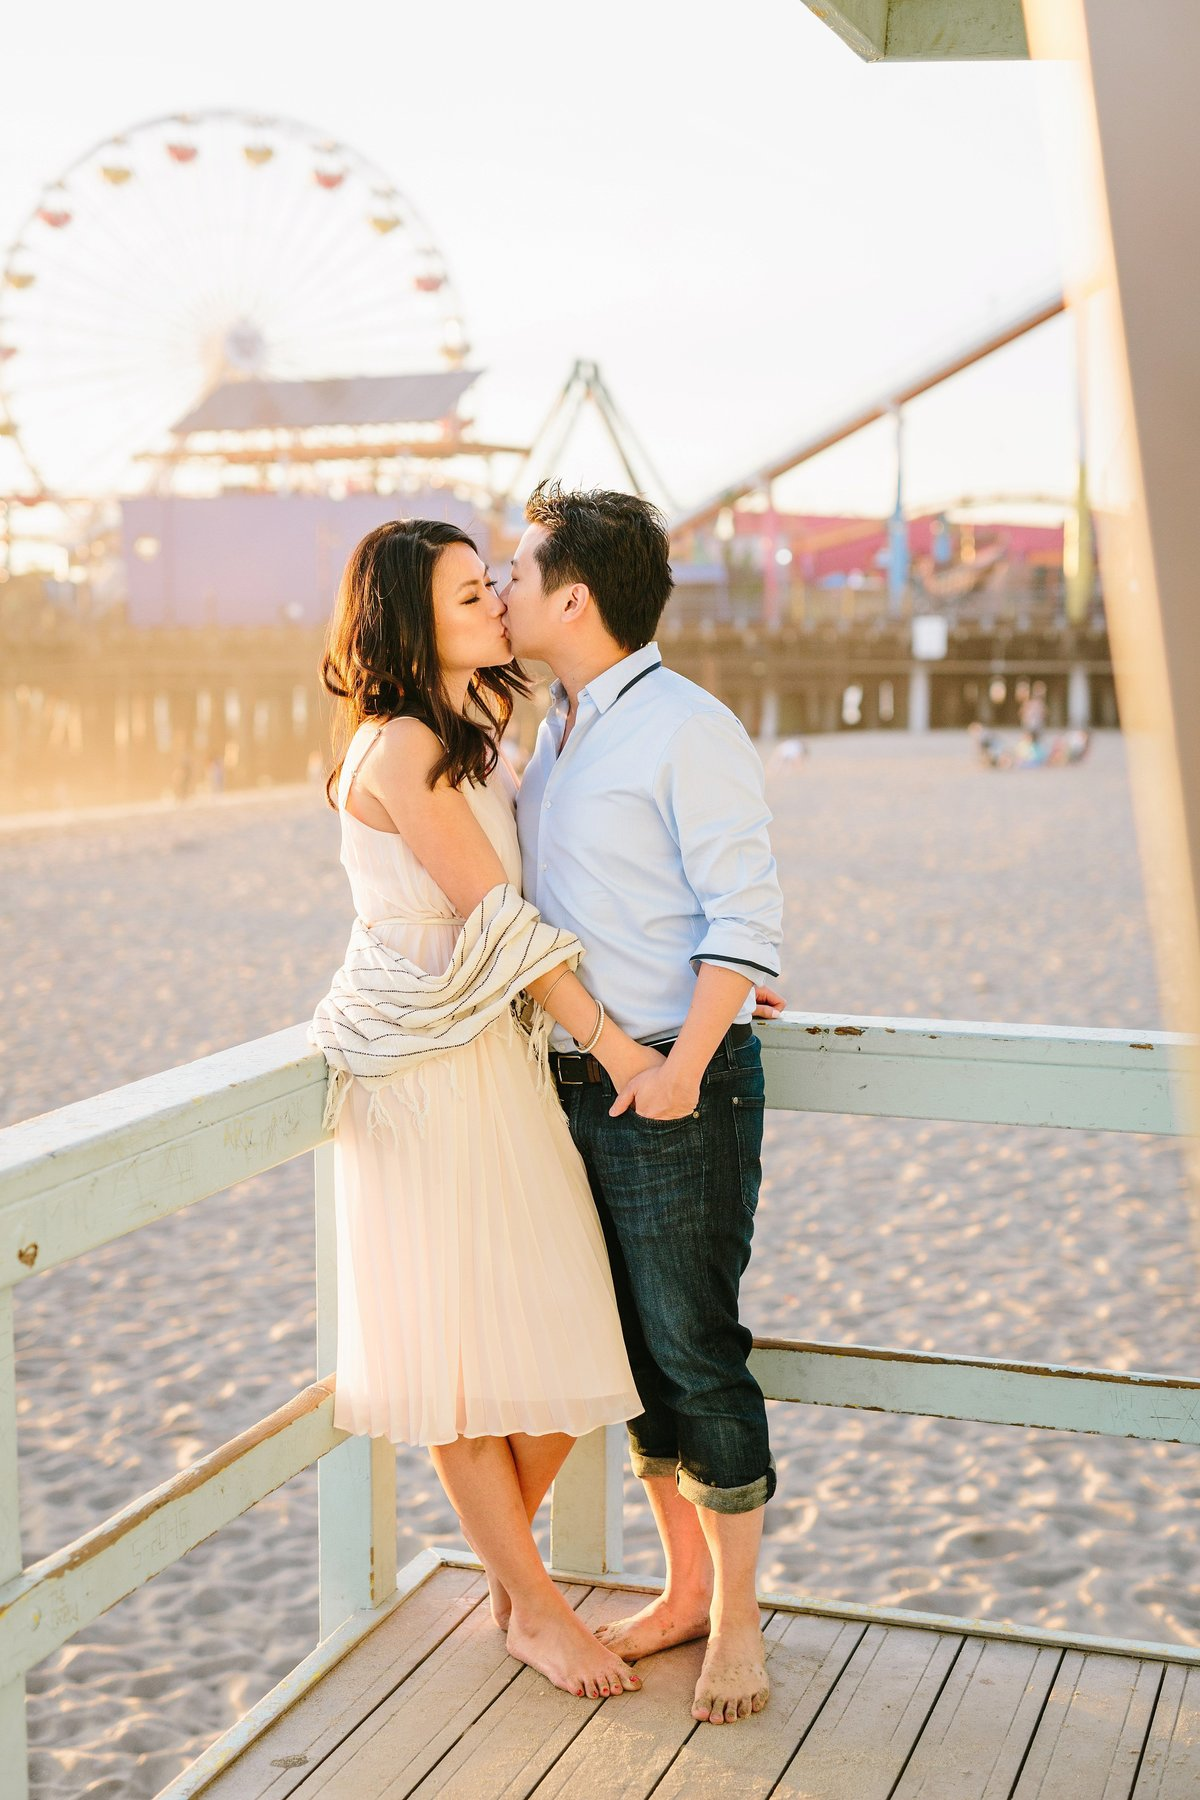 Best California Engagement Photographer_Jodee Debes Photography_136